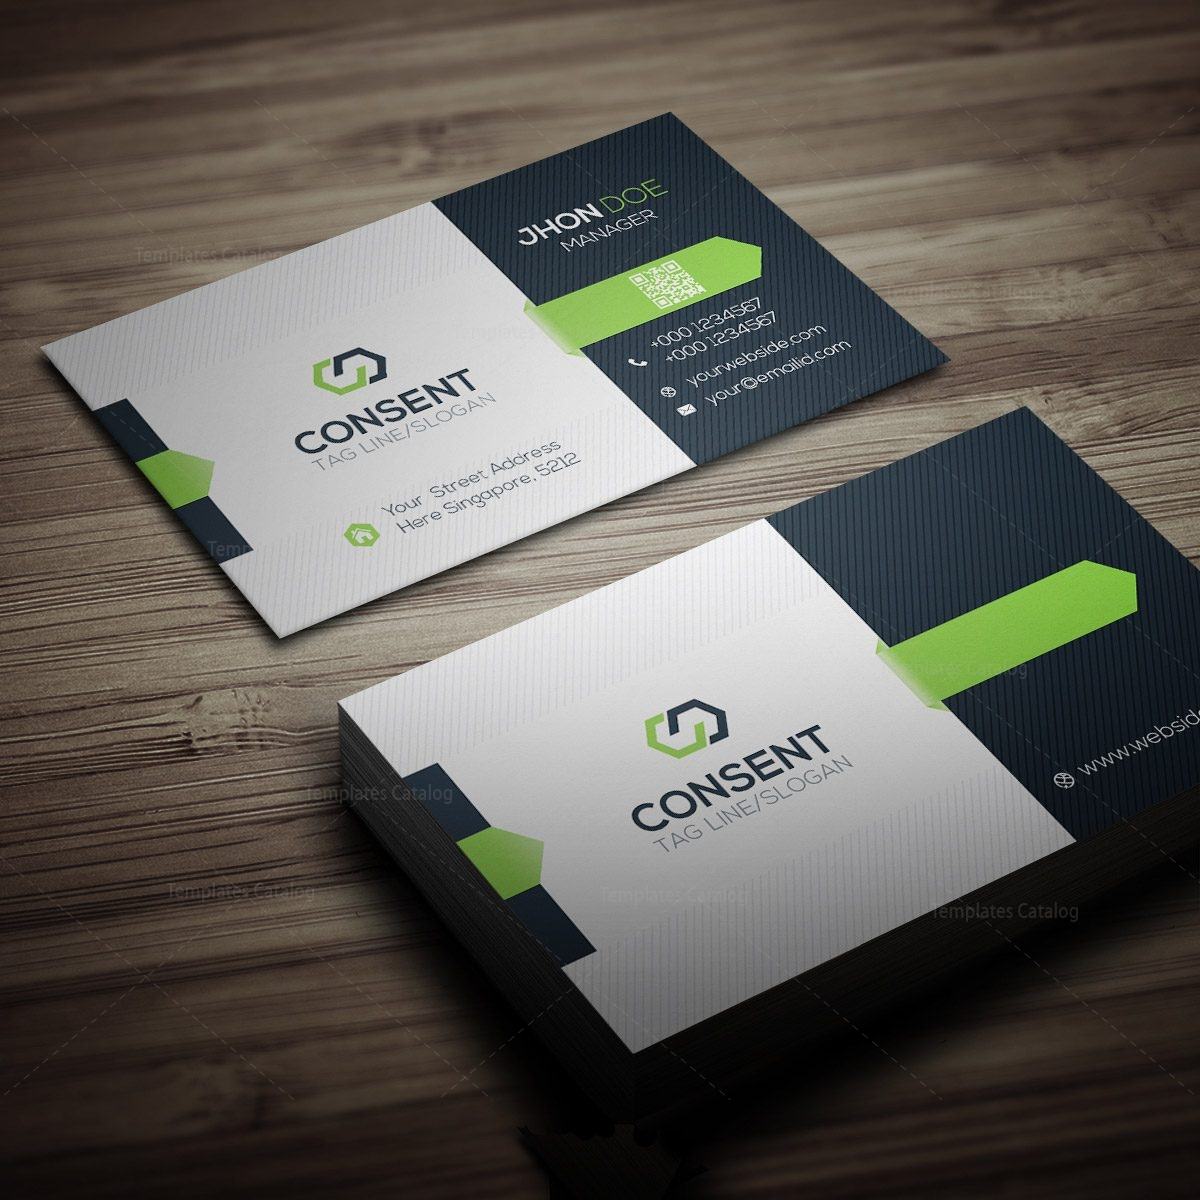 Consent business card template 000275 template catalog for Busniess card template